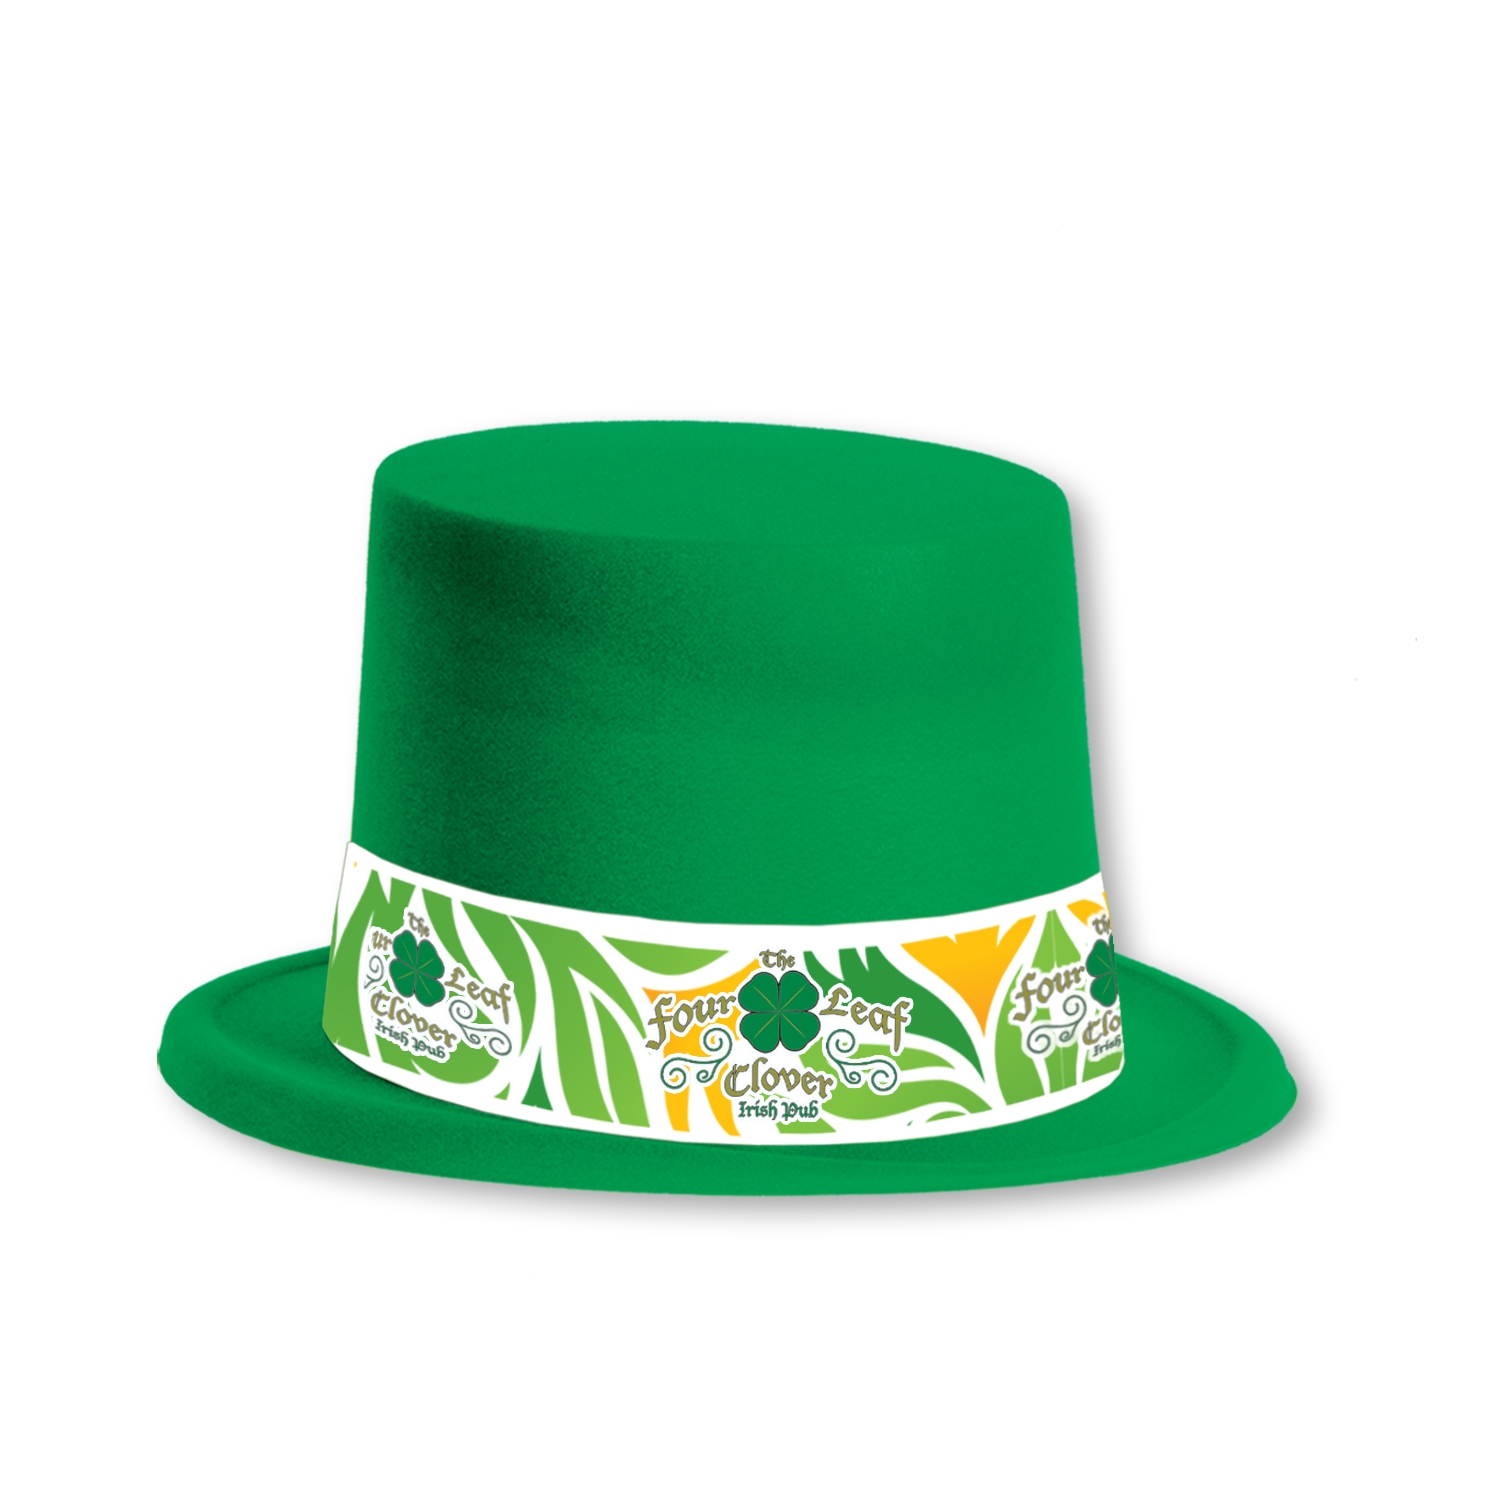 Custom Velour Toppers with Imprinted Band Custom Velour Toppers with Imprinted Band, custom, velour, toppers, party favor, st. patricks day, wholesale, inexpensive, bulk